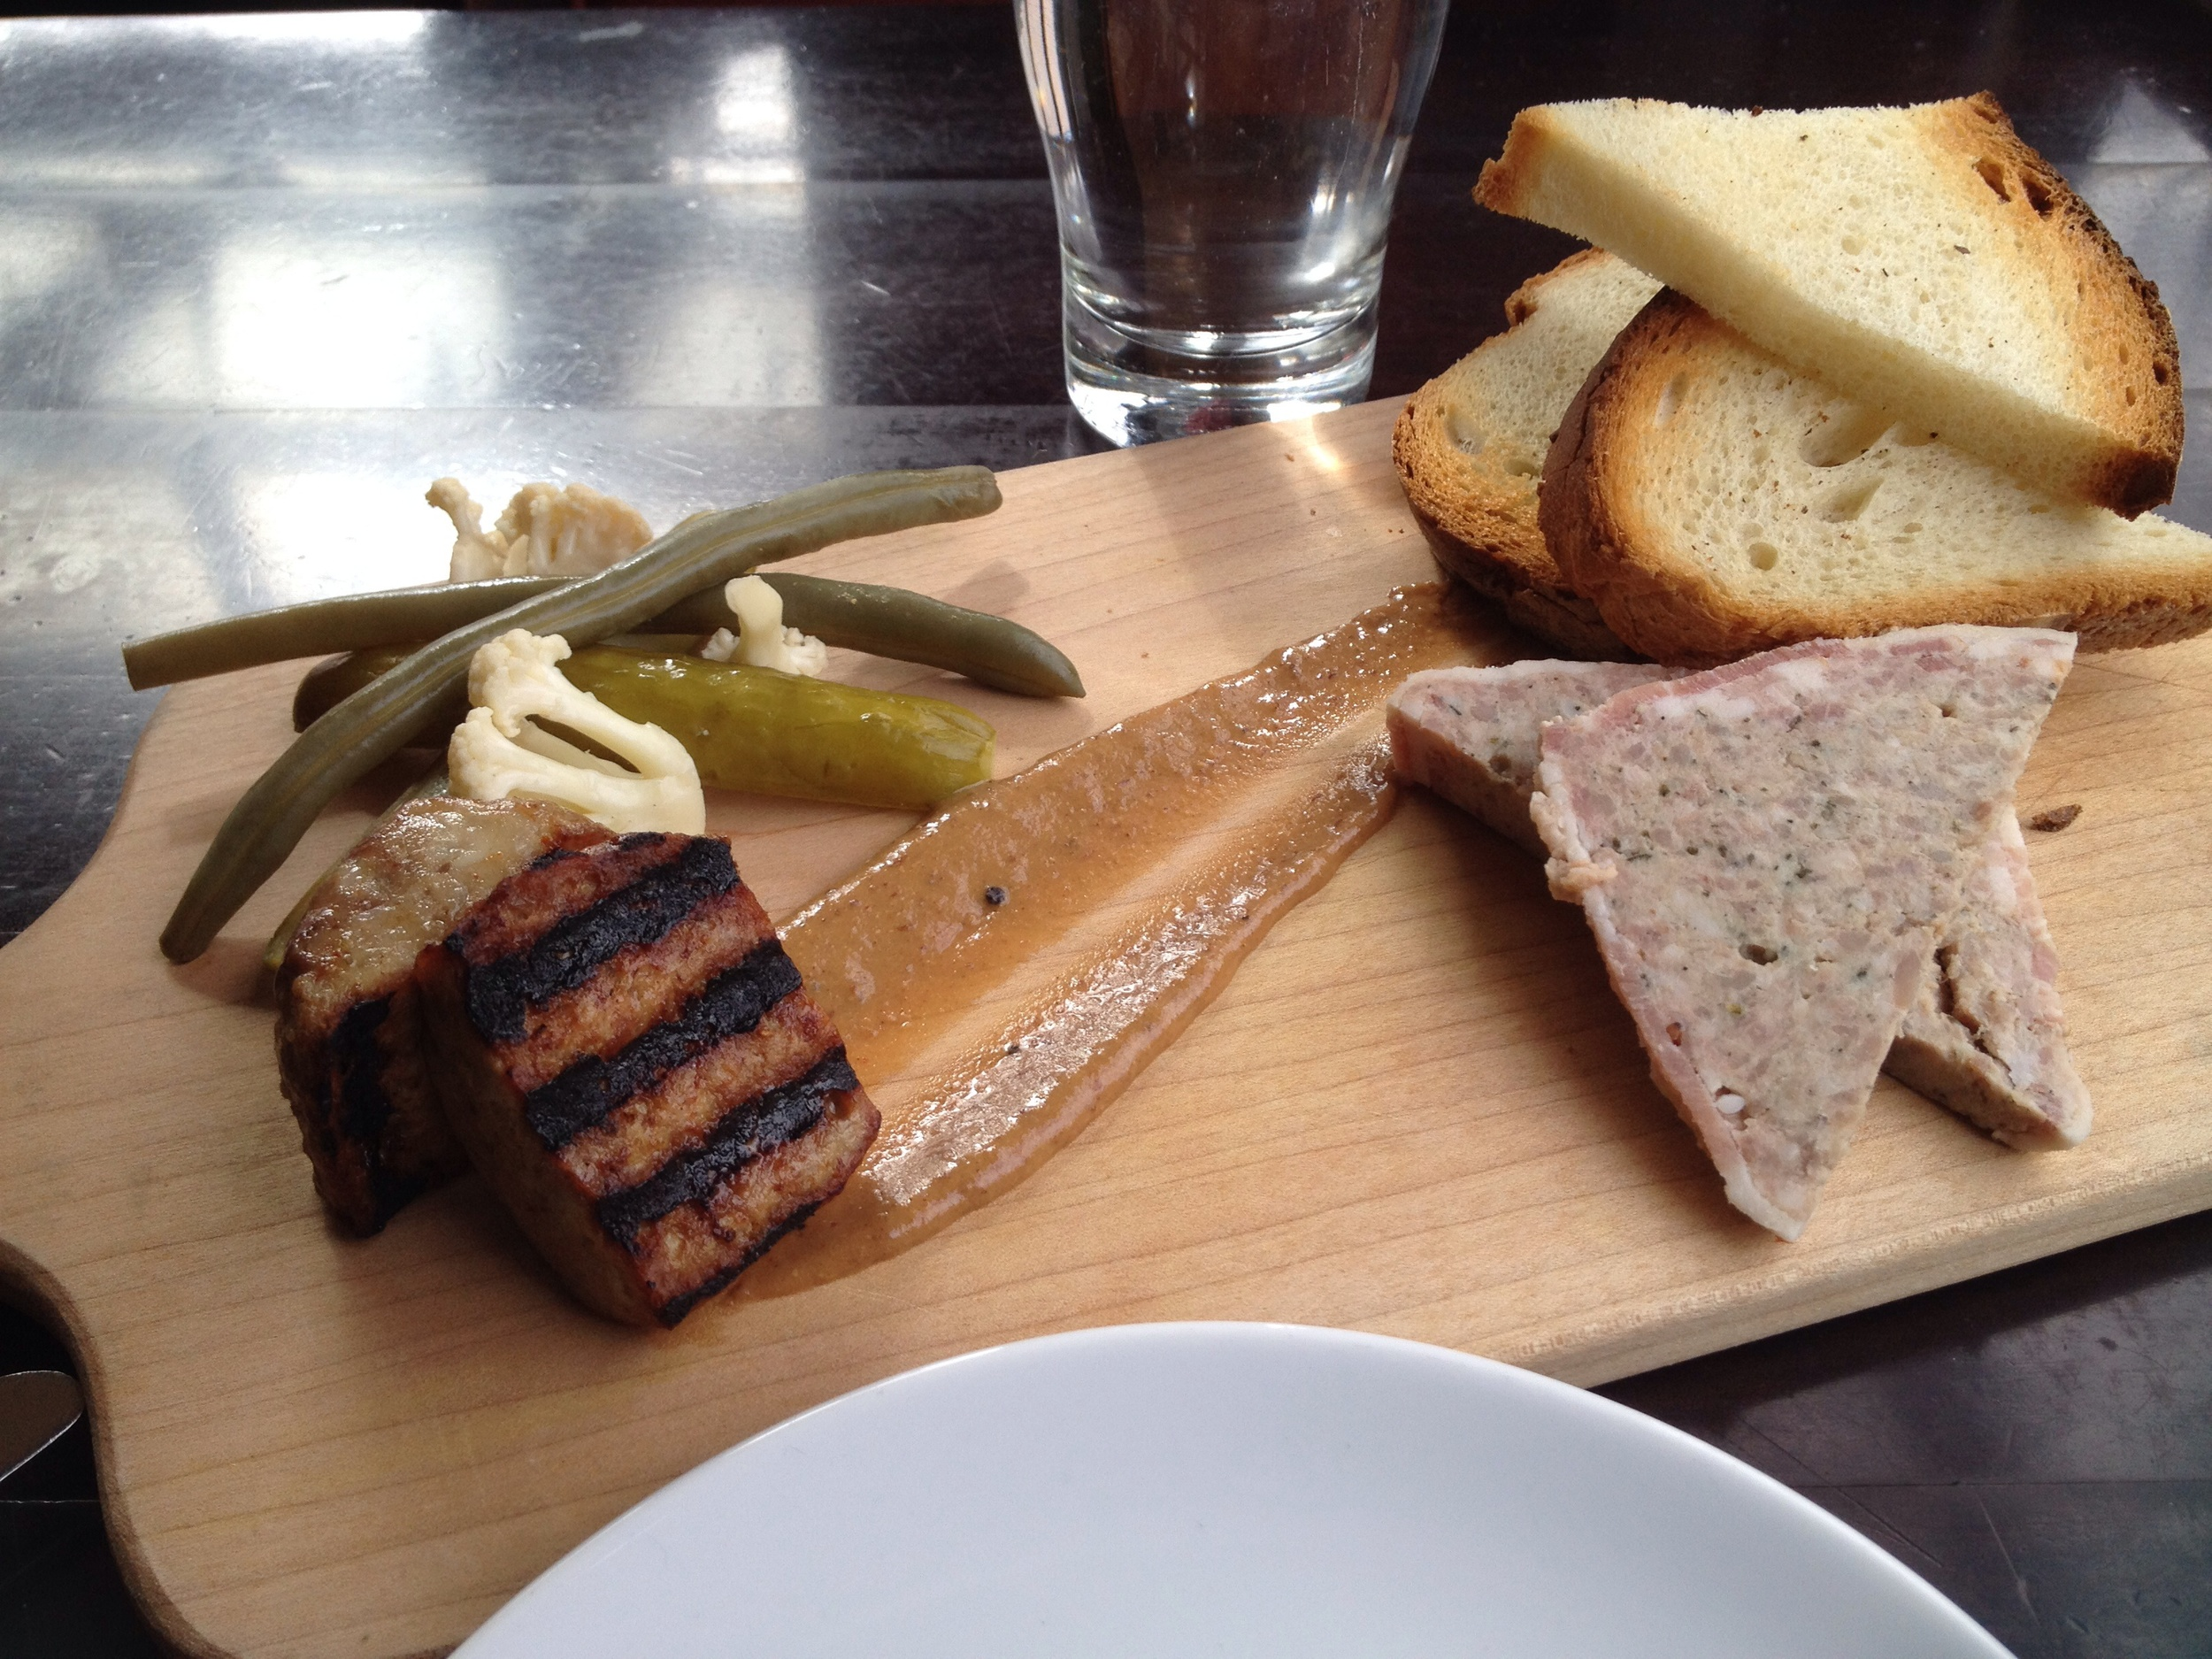 Ploughman's Plank from Chill Winston.